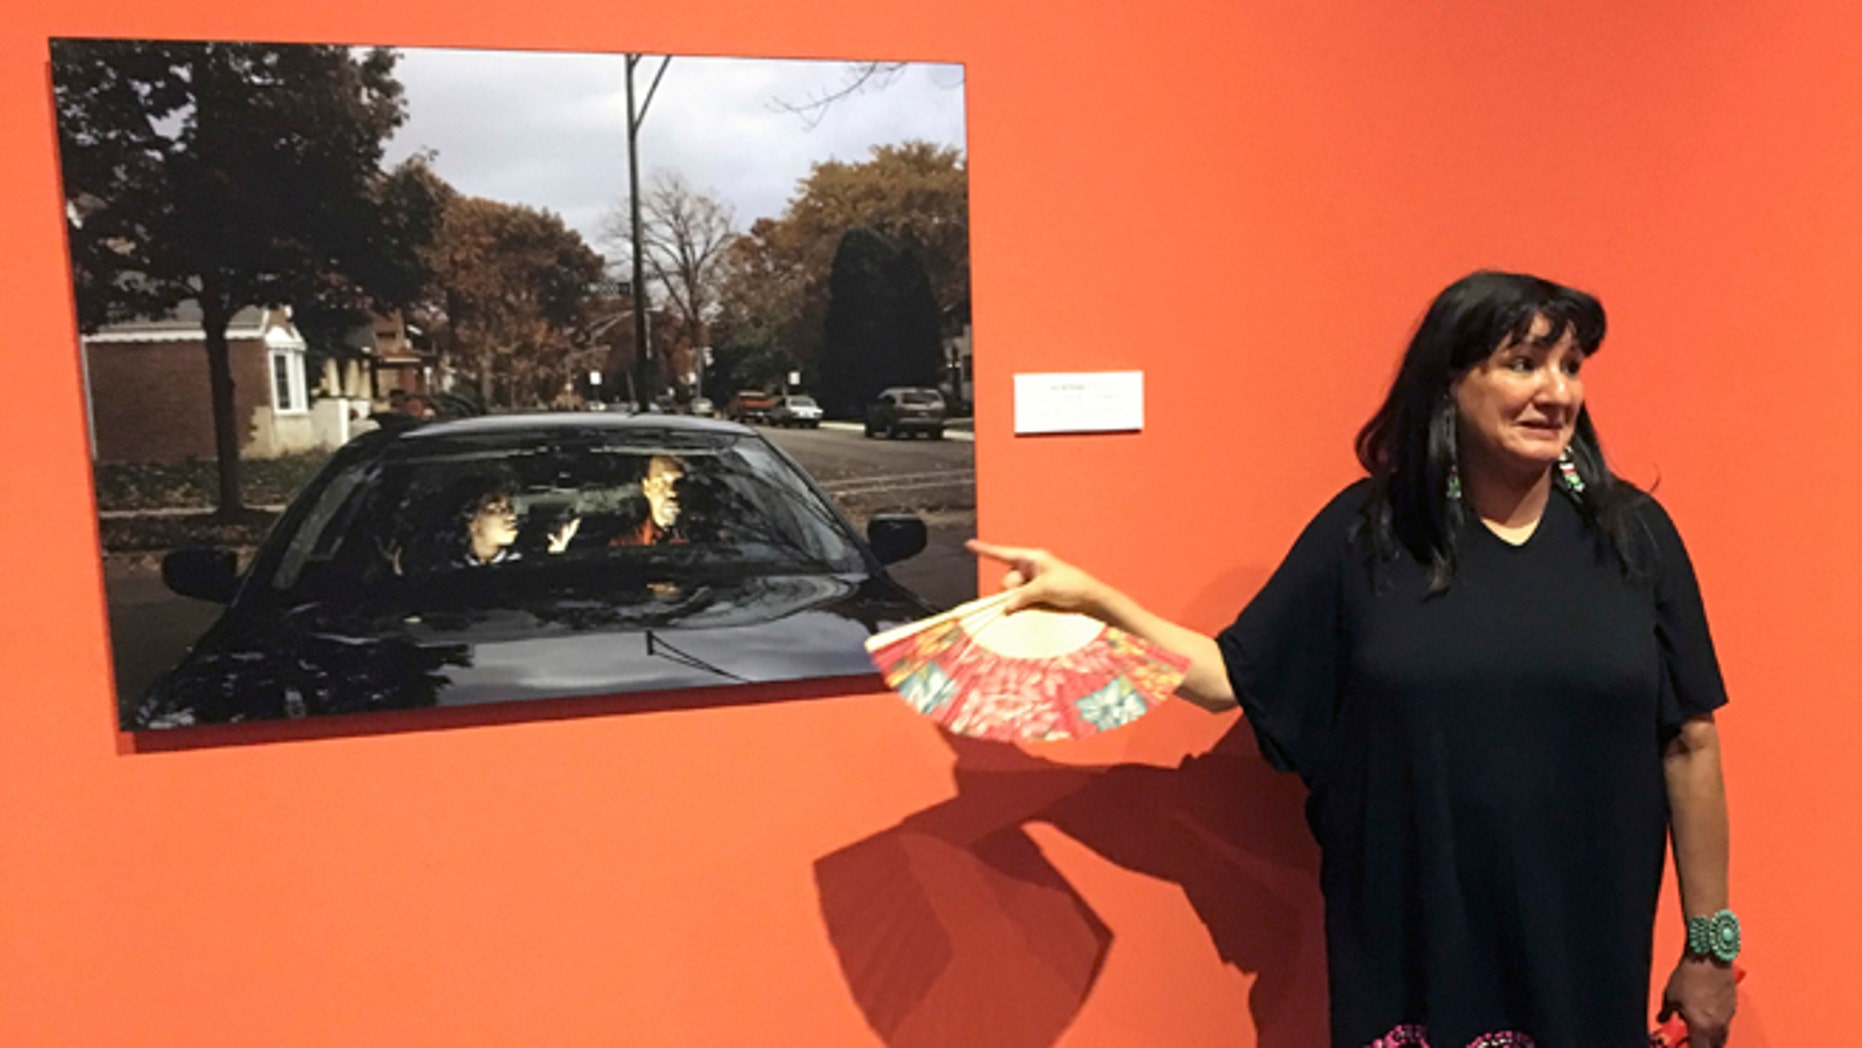 """This Wednesday, July 27, 2016 photo acclaimed Mexican-American author Sandra Cisneros points to a photograph by Cecil McDonald, Jr., at the National Hispanic Cultural Center in Albuquerque, N.M. at an exhibit based by her 1984 novel """"The House of Mango Street."""" The exhibit """"The House on Mango Street: Artists Interpret Community"""" features major themes of the novel of a Mexican-American girl coming of age in Chicago. (AP Photo/Russell Contreras)"""